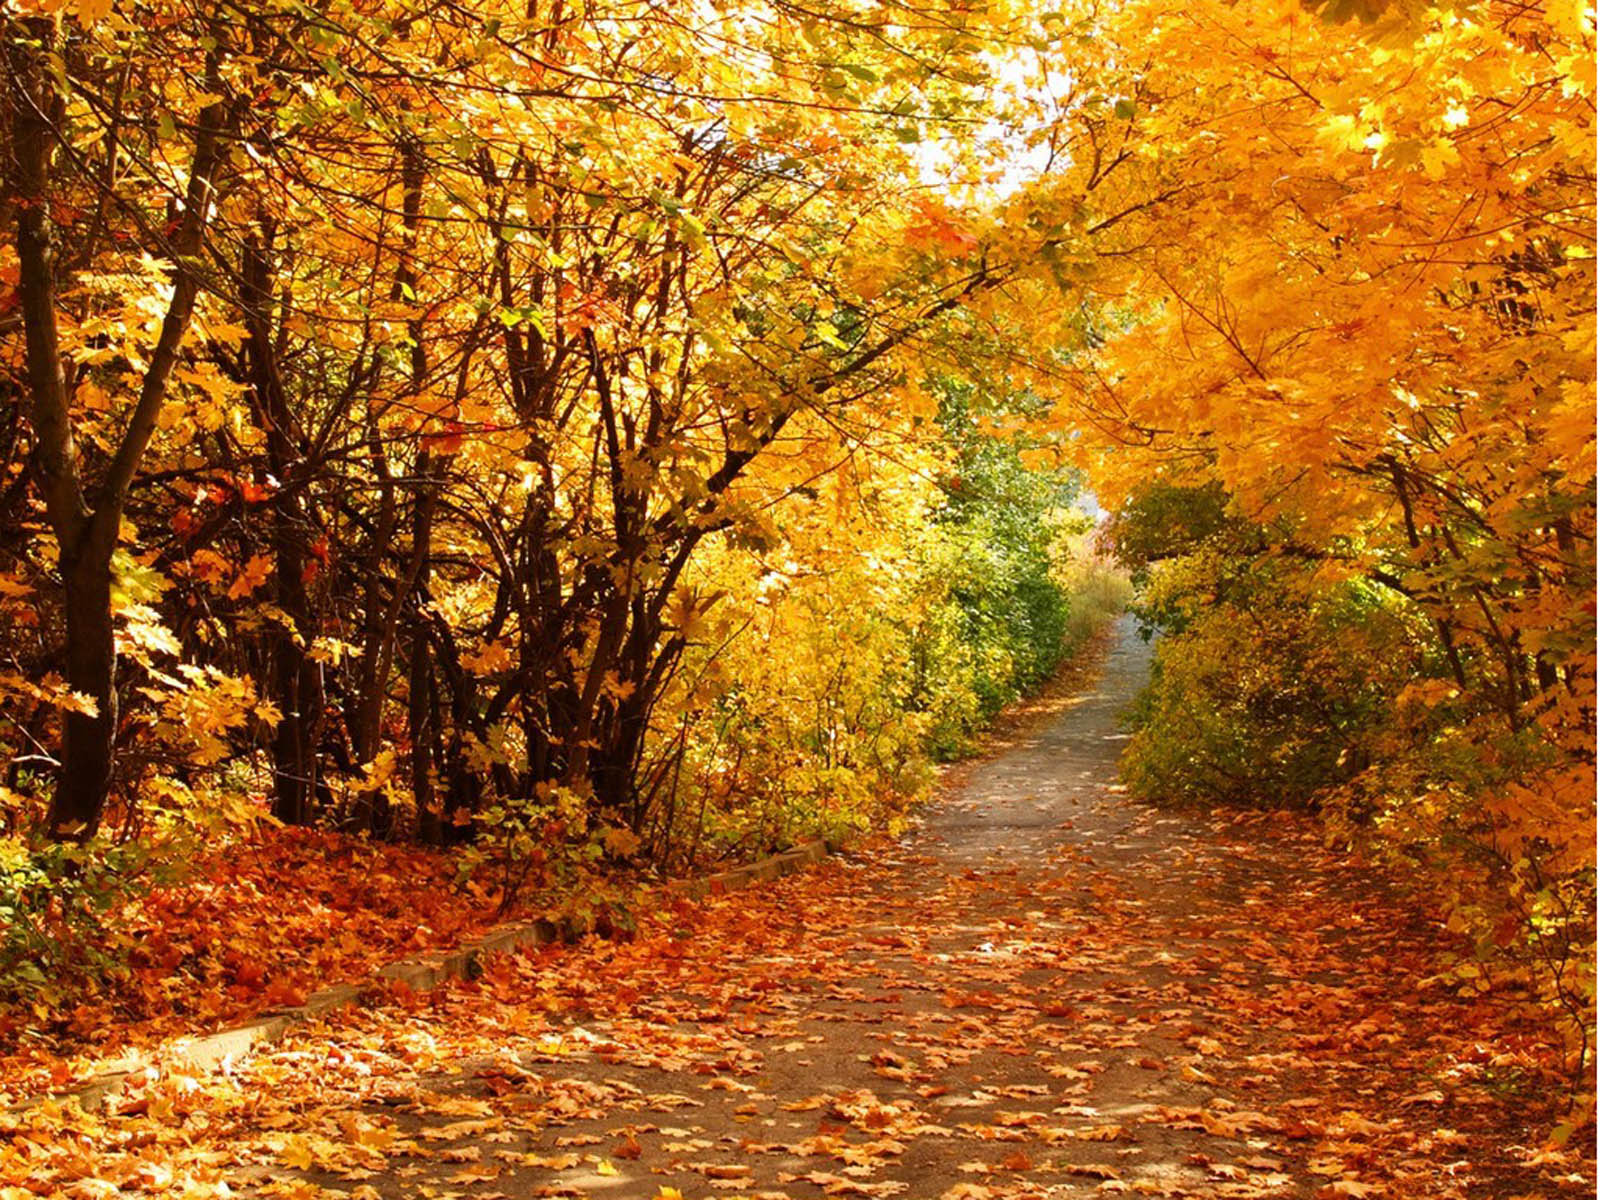 Autumn Scenery Desktop Wallpapers Beautiful Autumn Scenery Desktop 1600x1200